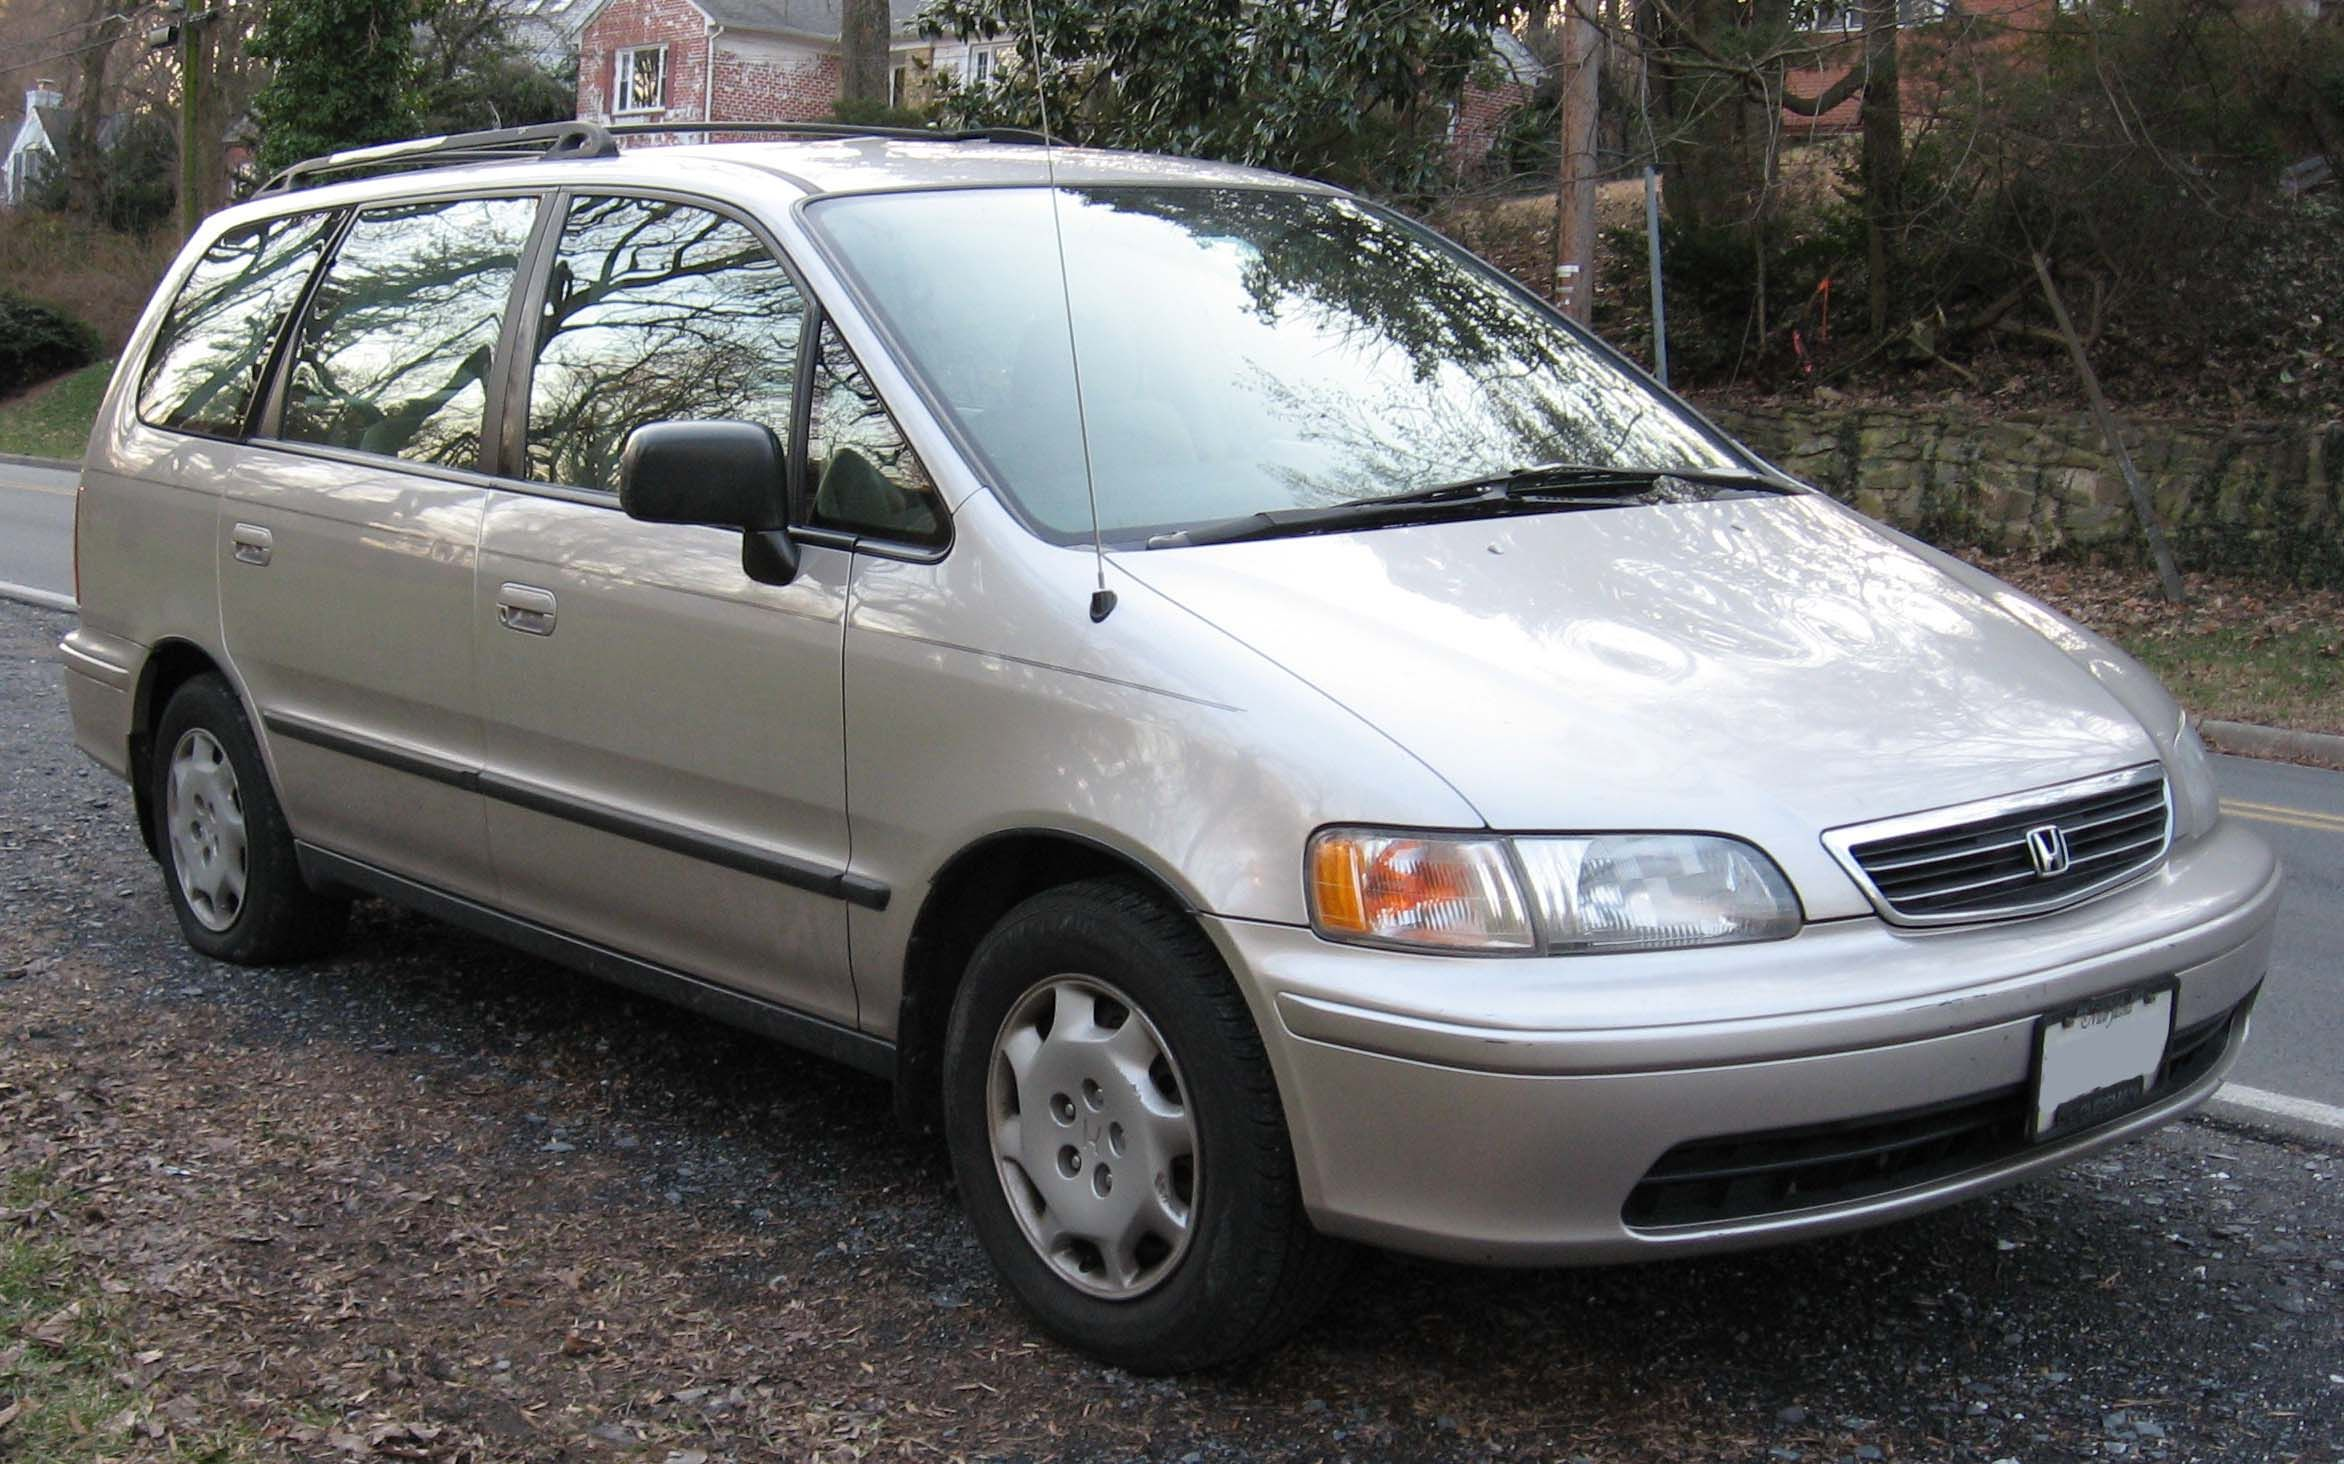 c4760b786f51fad11b9736591fda9bfa Interesting Info About 2007 Odyssey with Amusing Gallery Cars Review